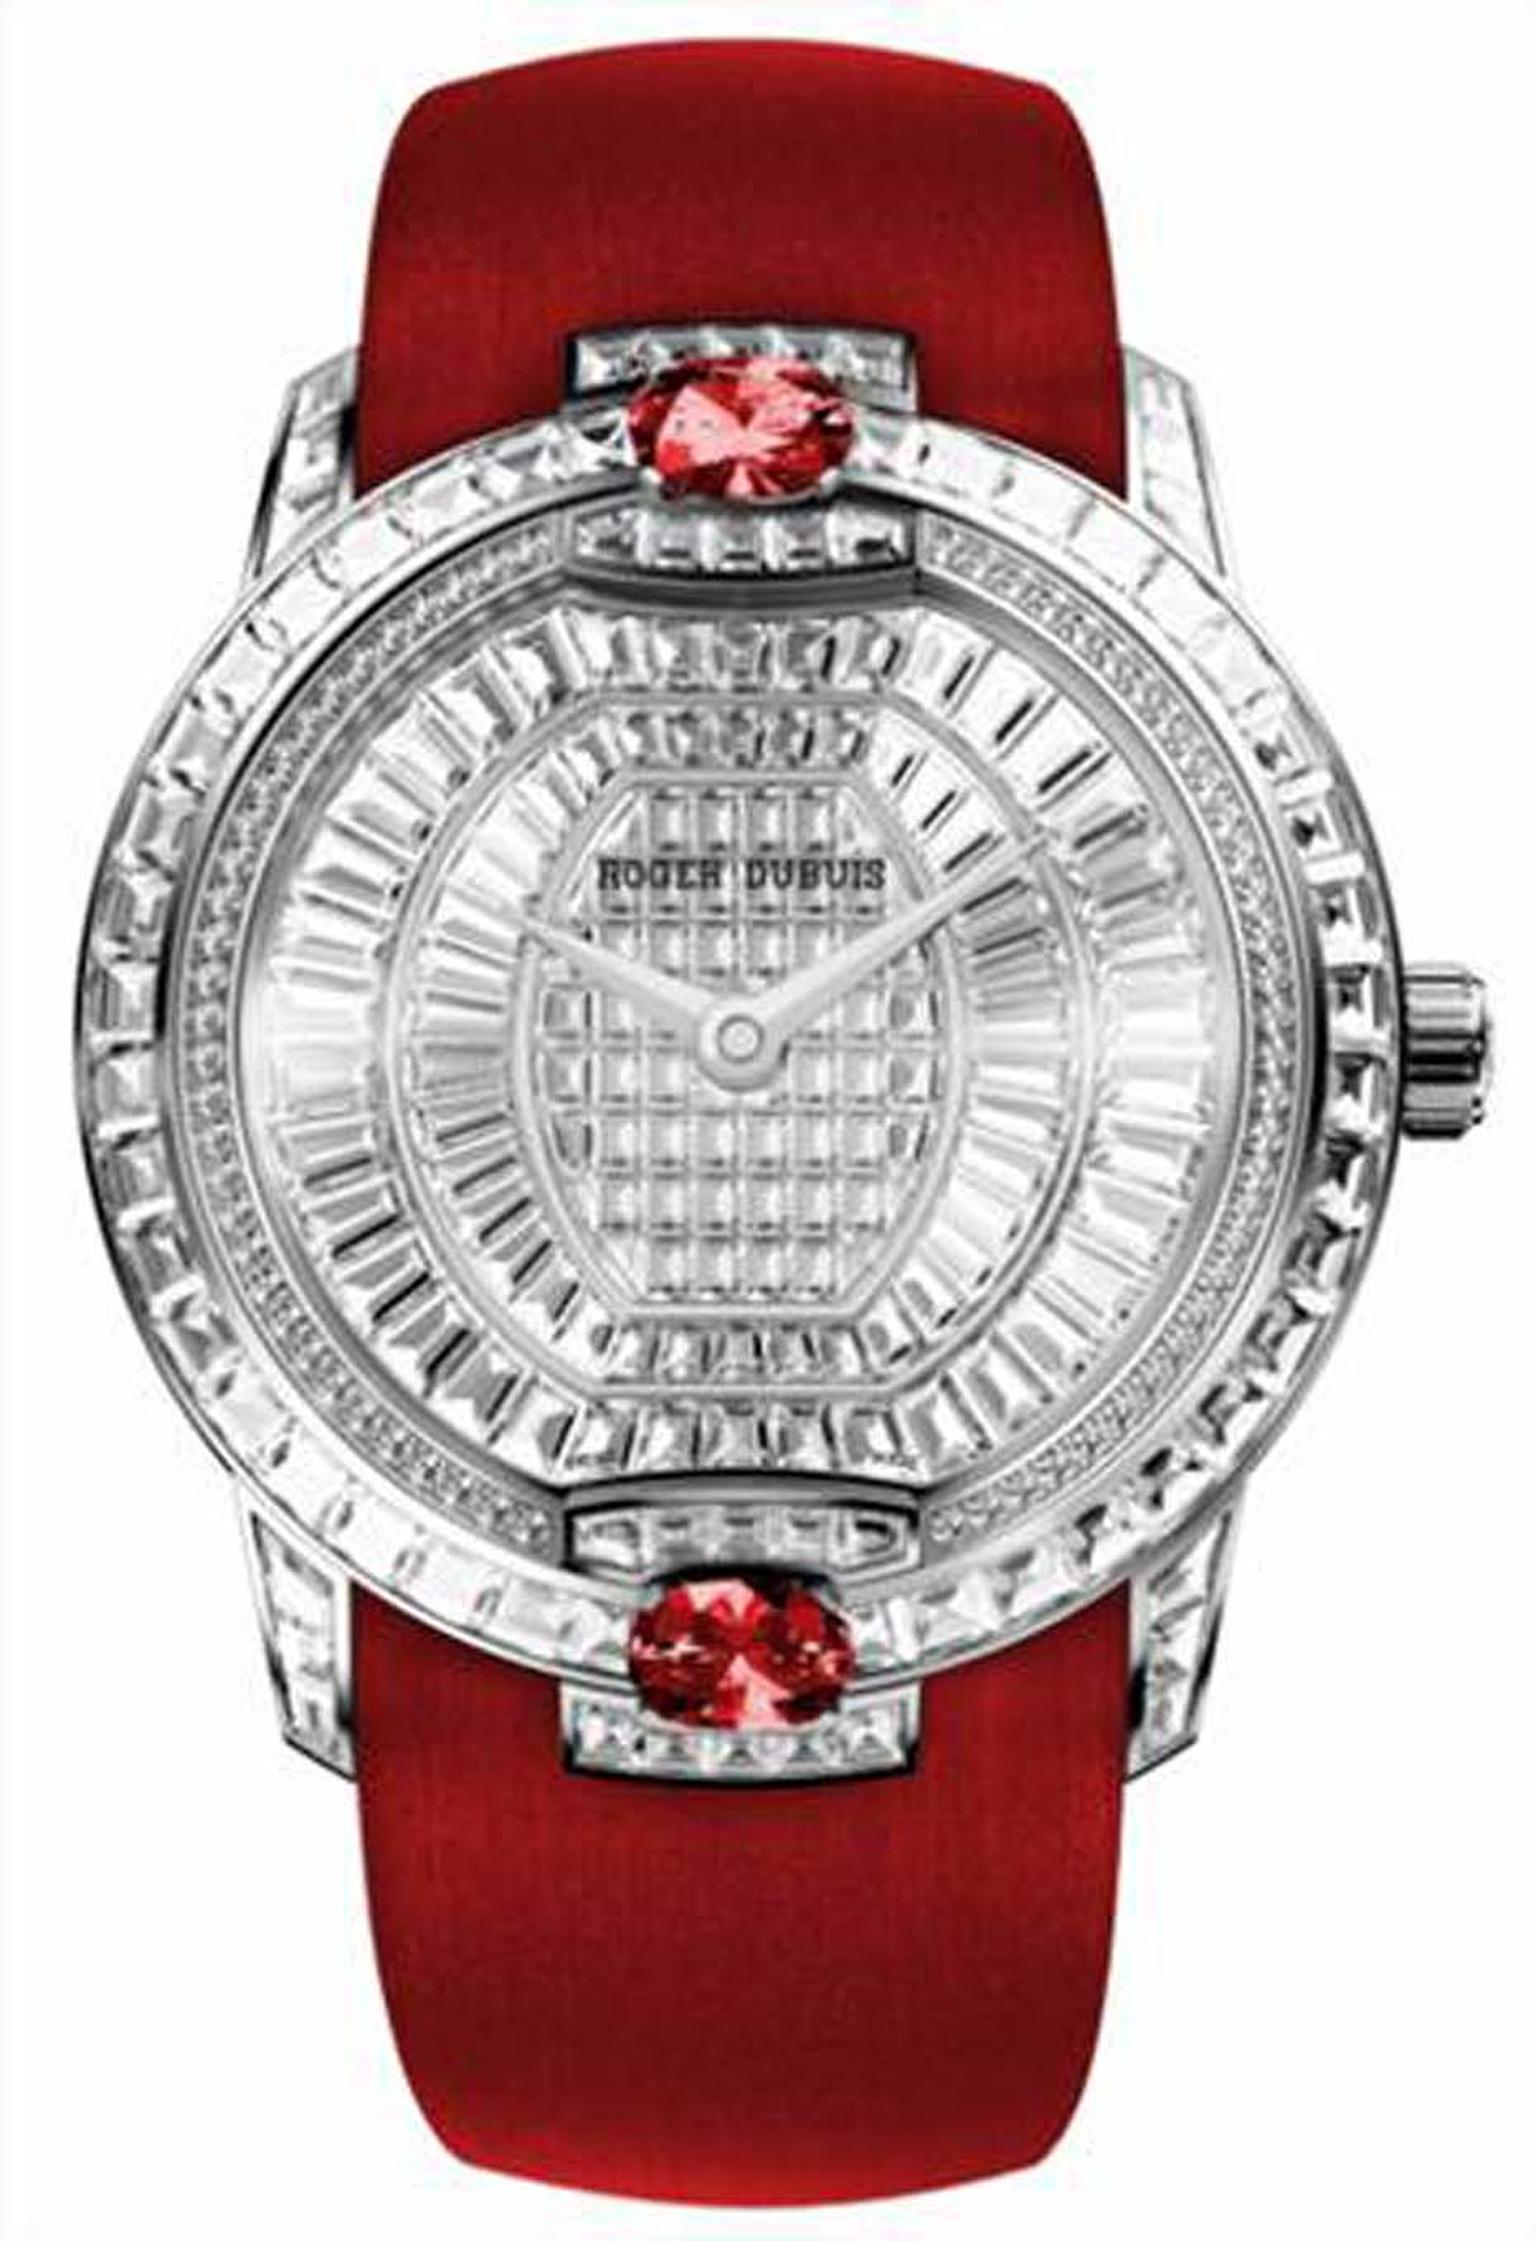 Roger Dubuis' Velvet watch